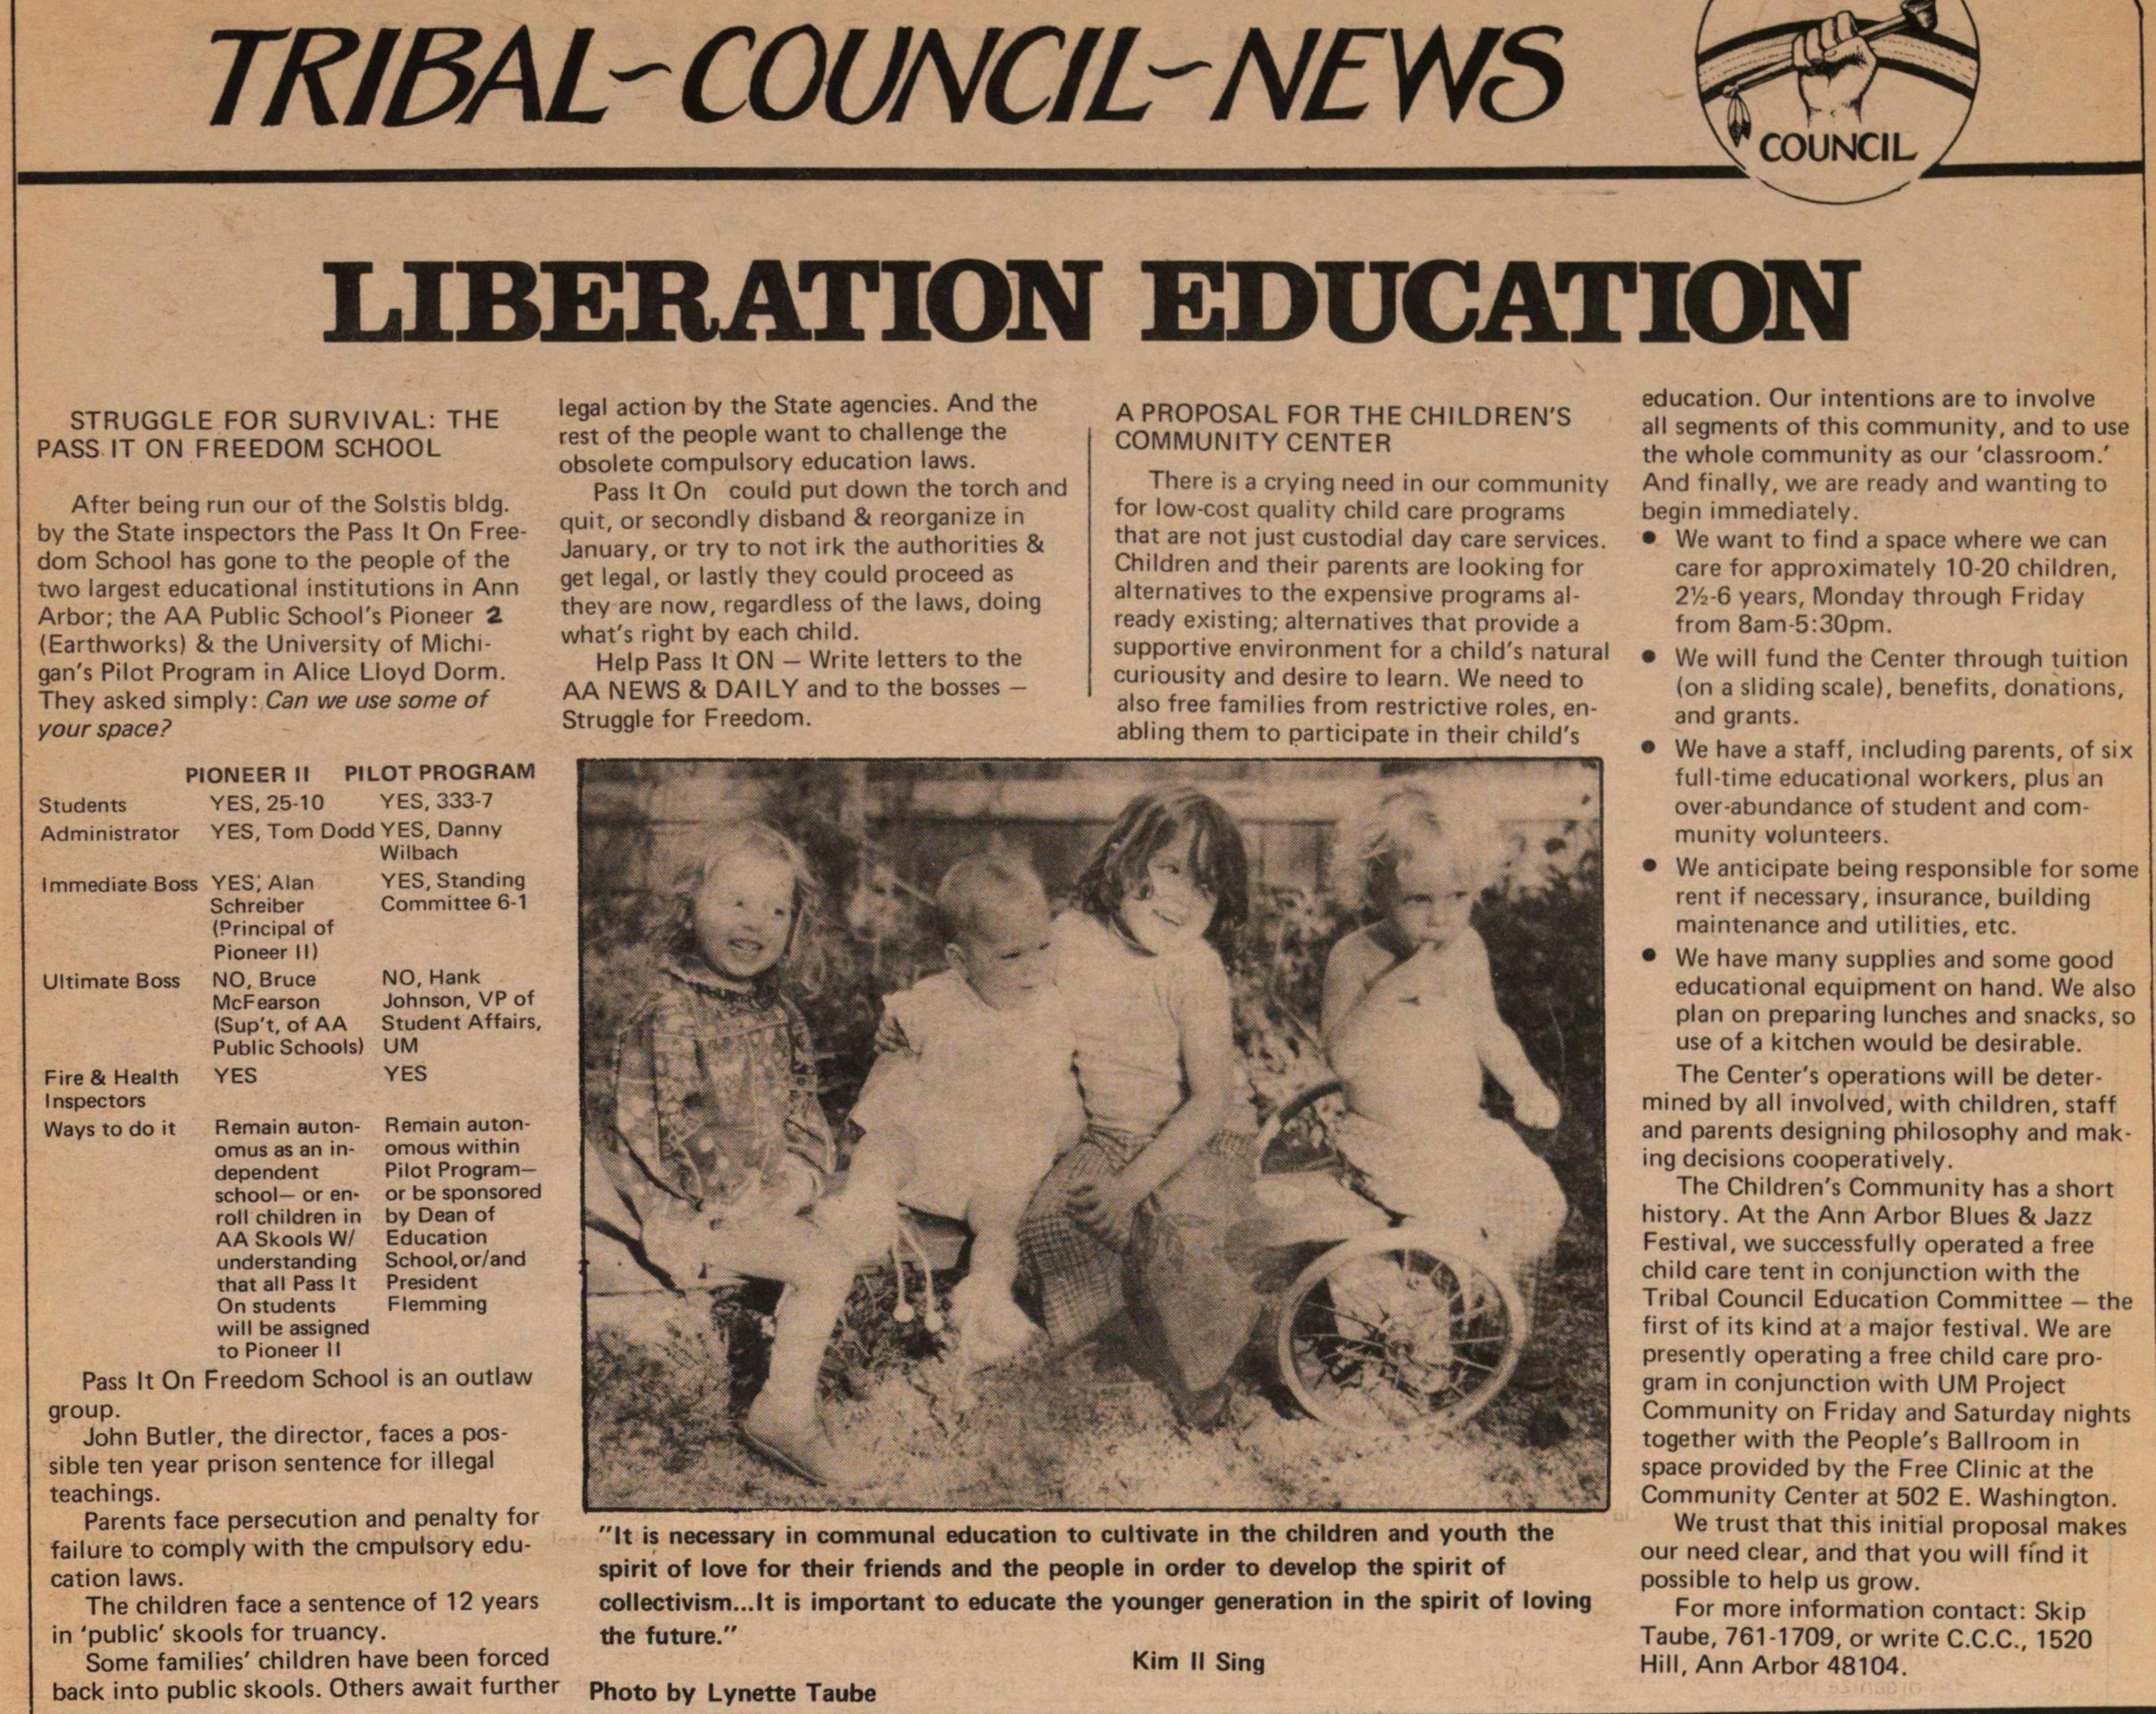 Tribal-Council-News Liberation Education image